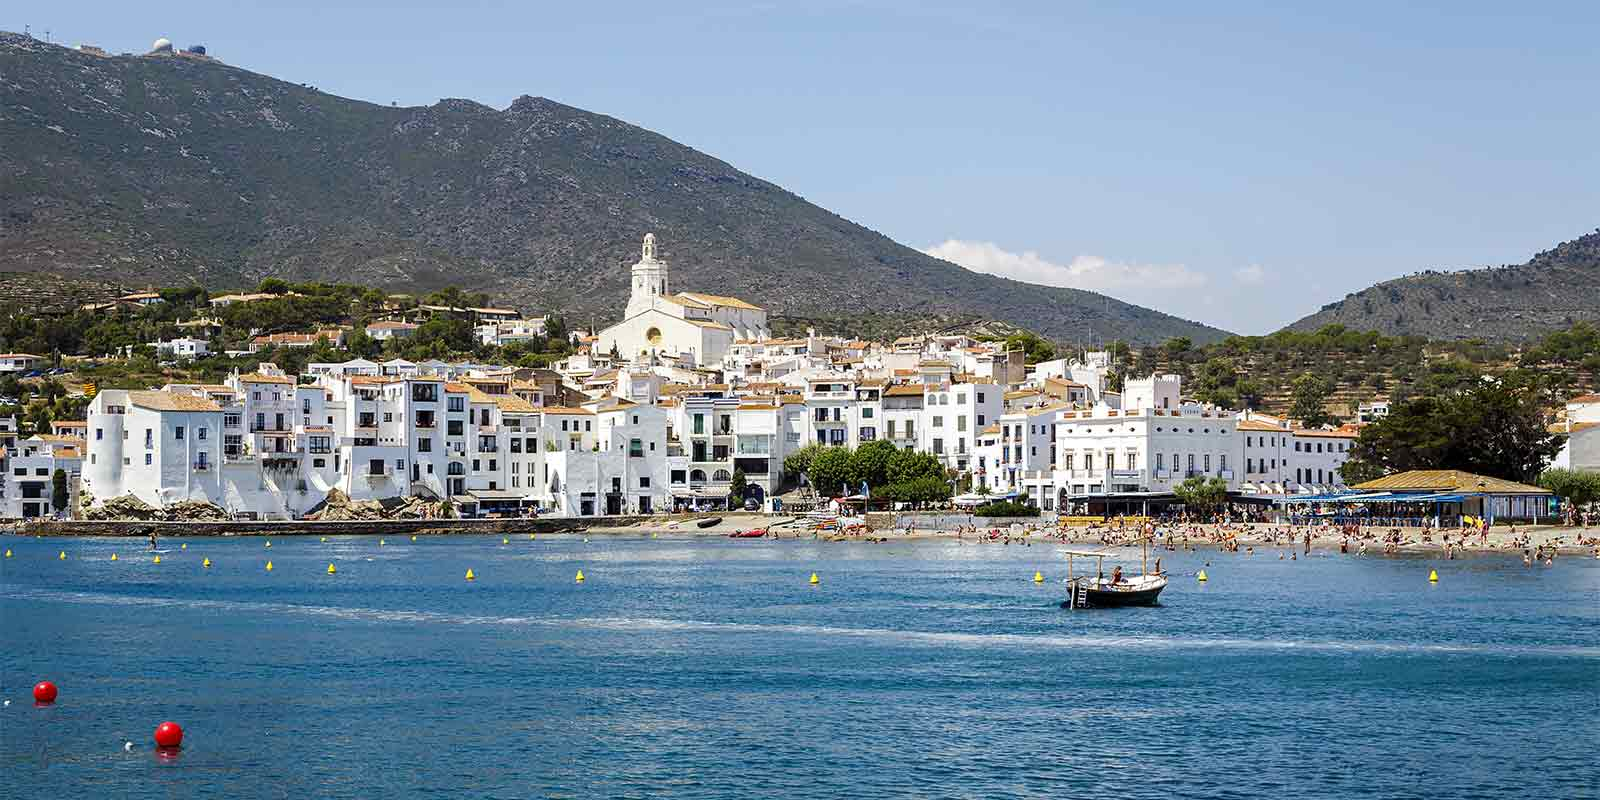 Town of Cadaques on the Catalan coast